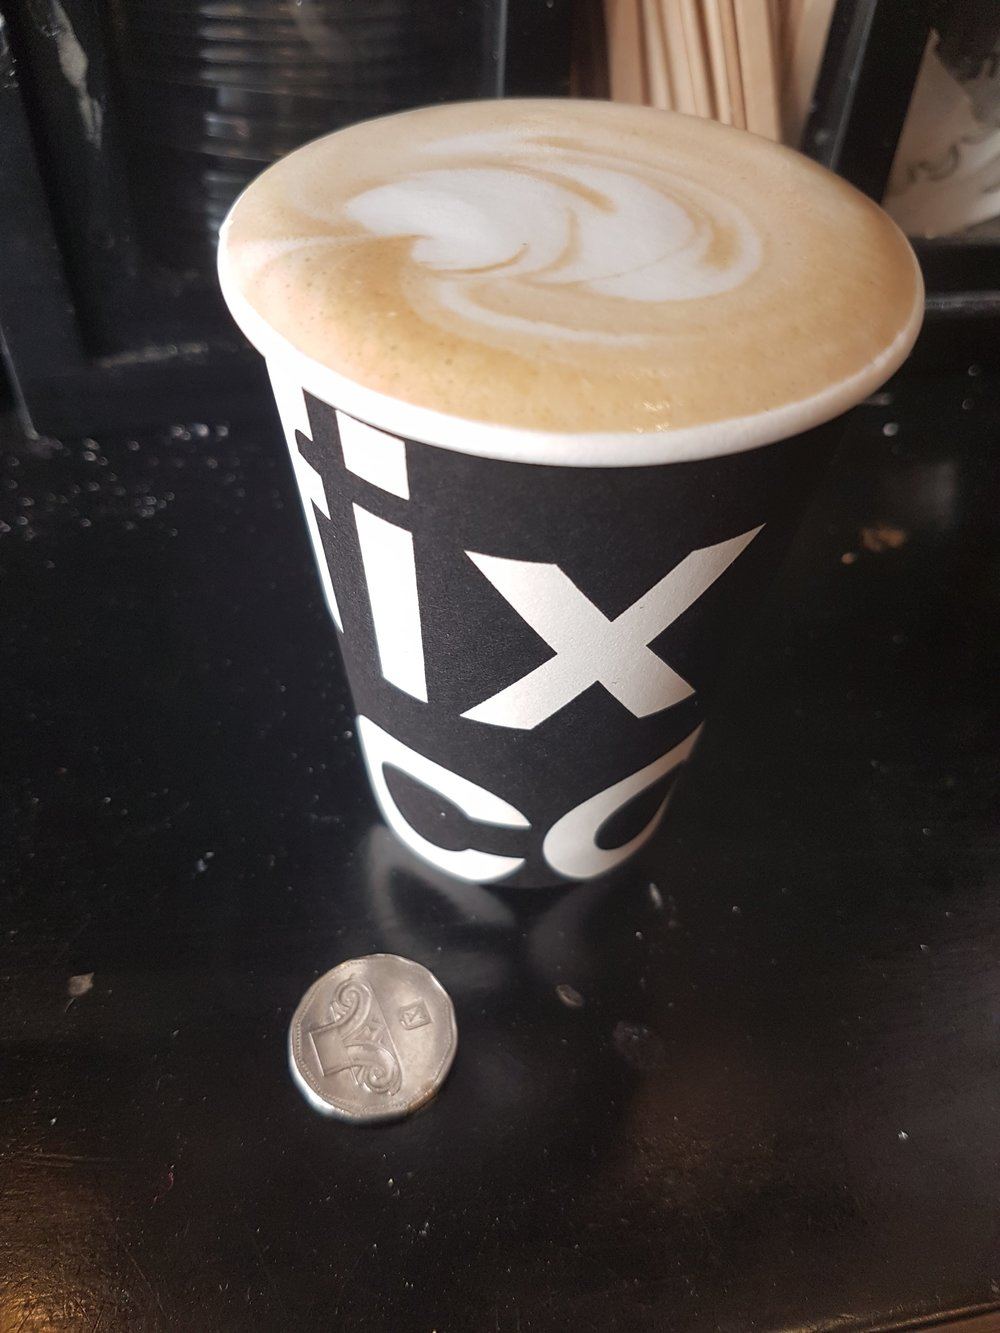 Cofix Latte with 5 shekel coin. Back to the Future